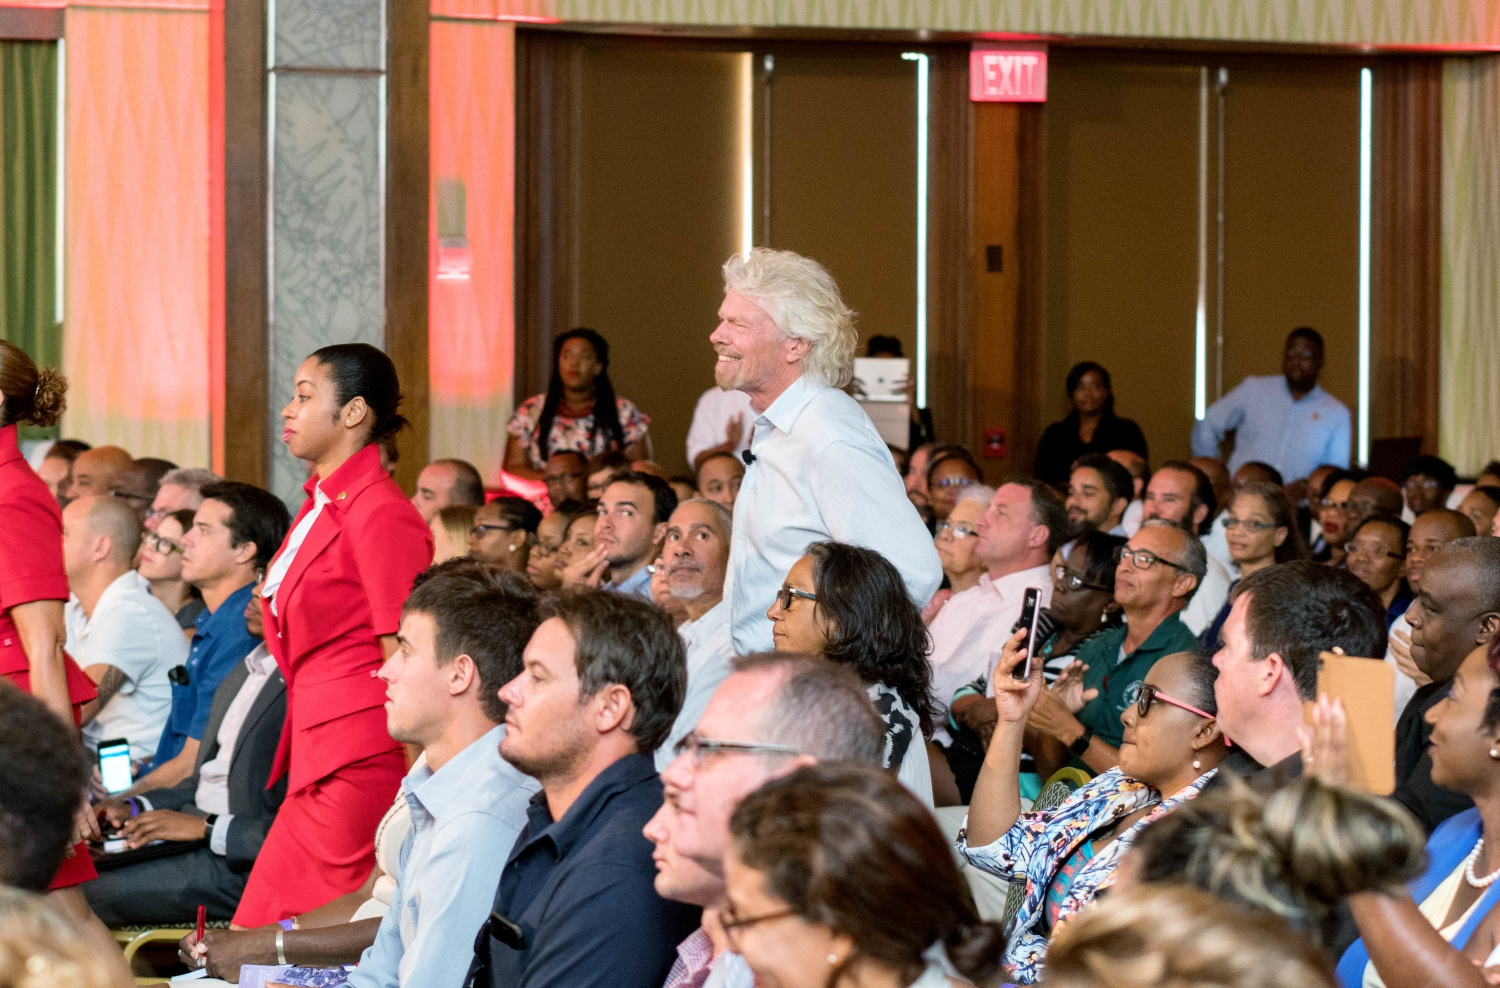 A chat with Sir Richard Branson